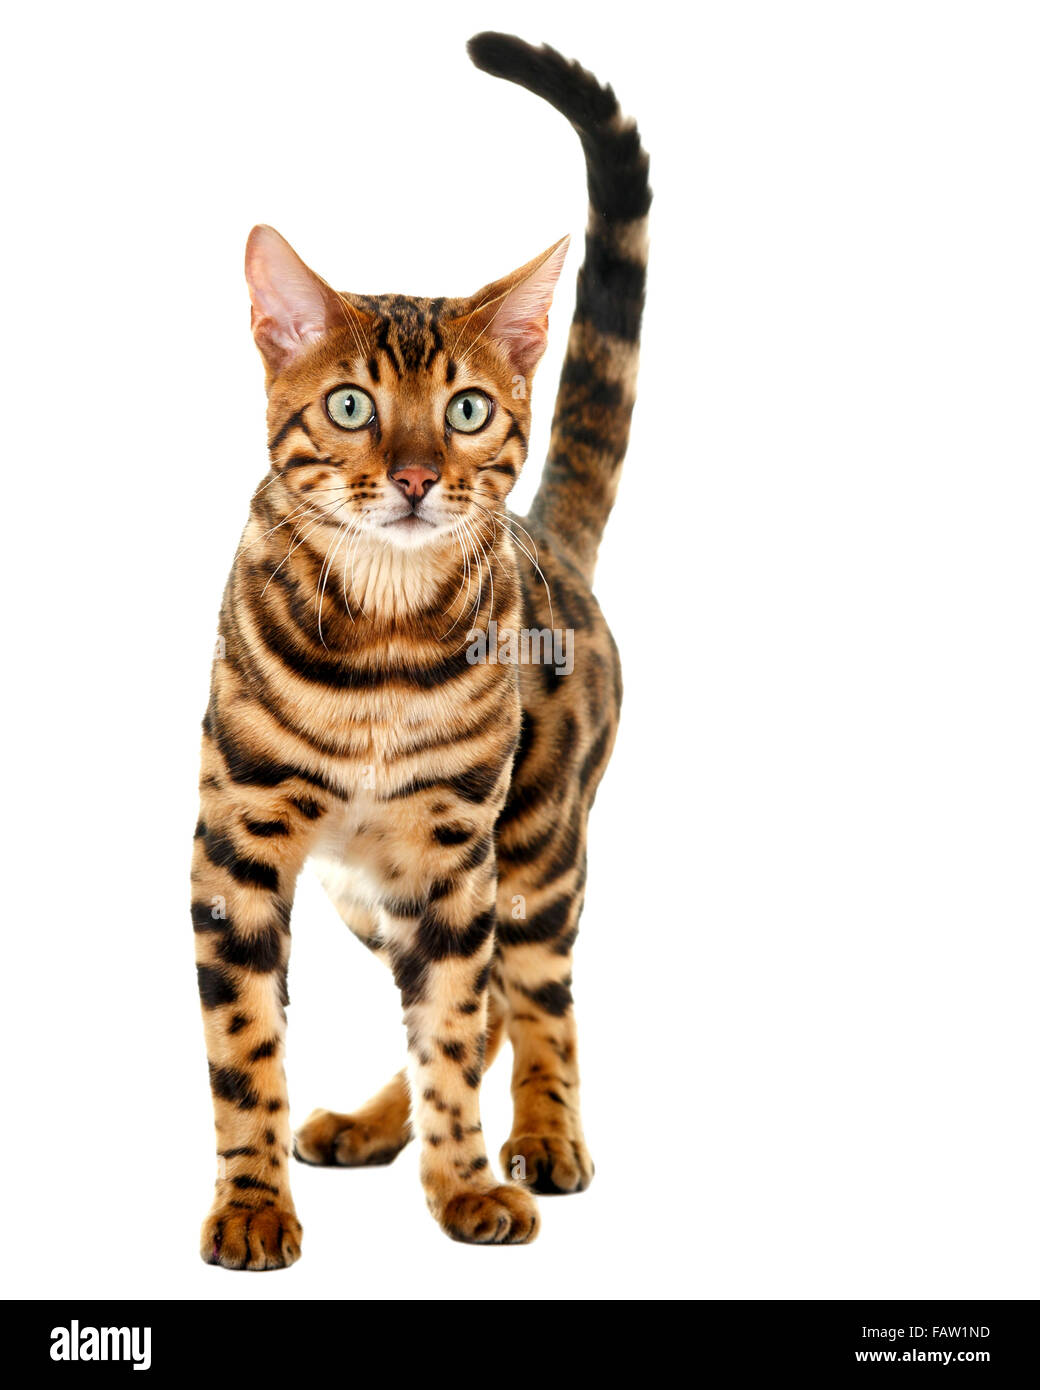 Male Bengal cat portrait isolated on white background  Model Release: No.  Property Release: No. - Stock Image